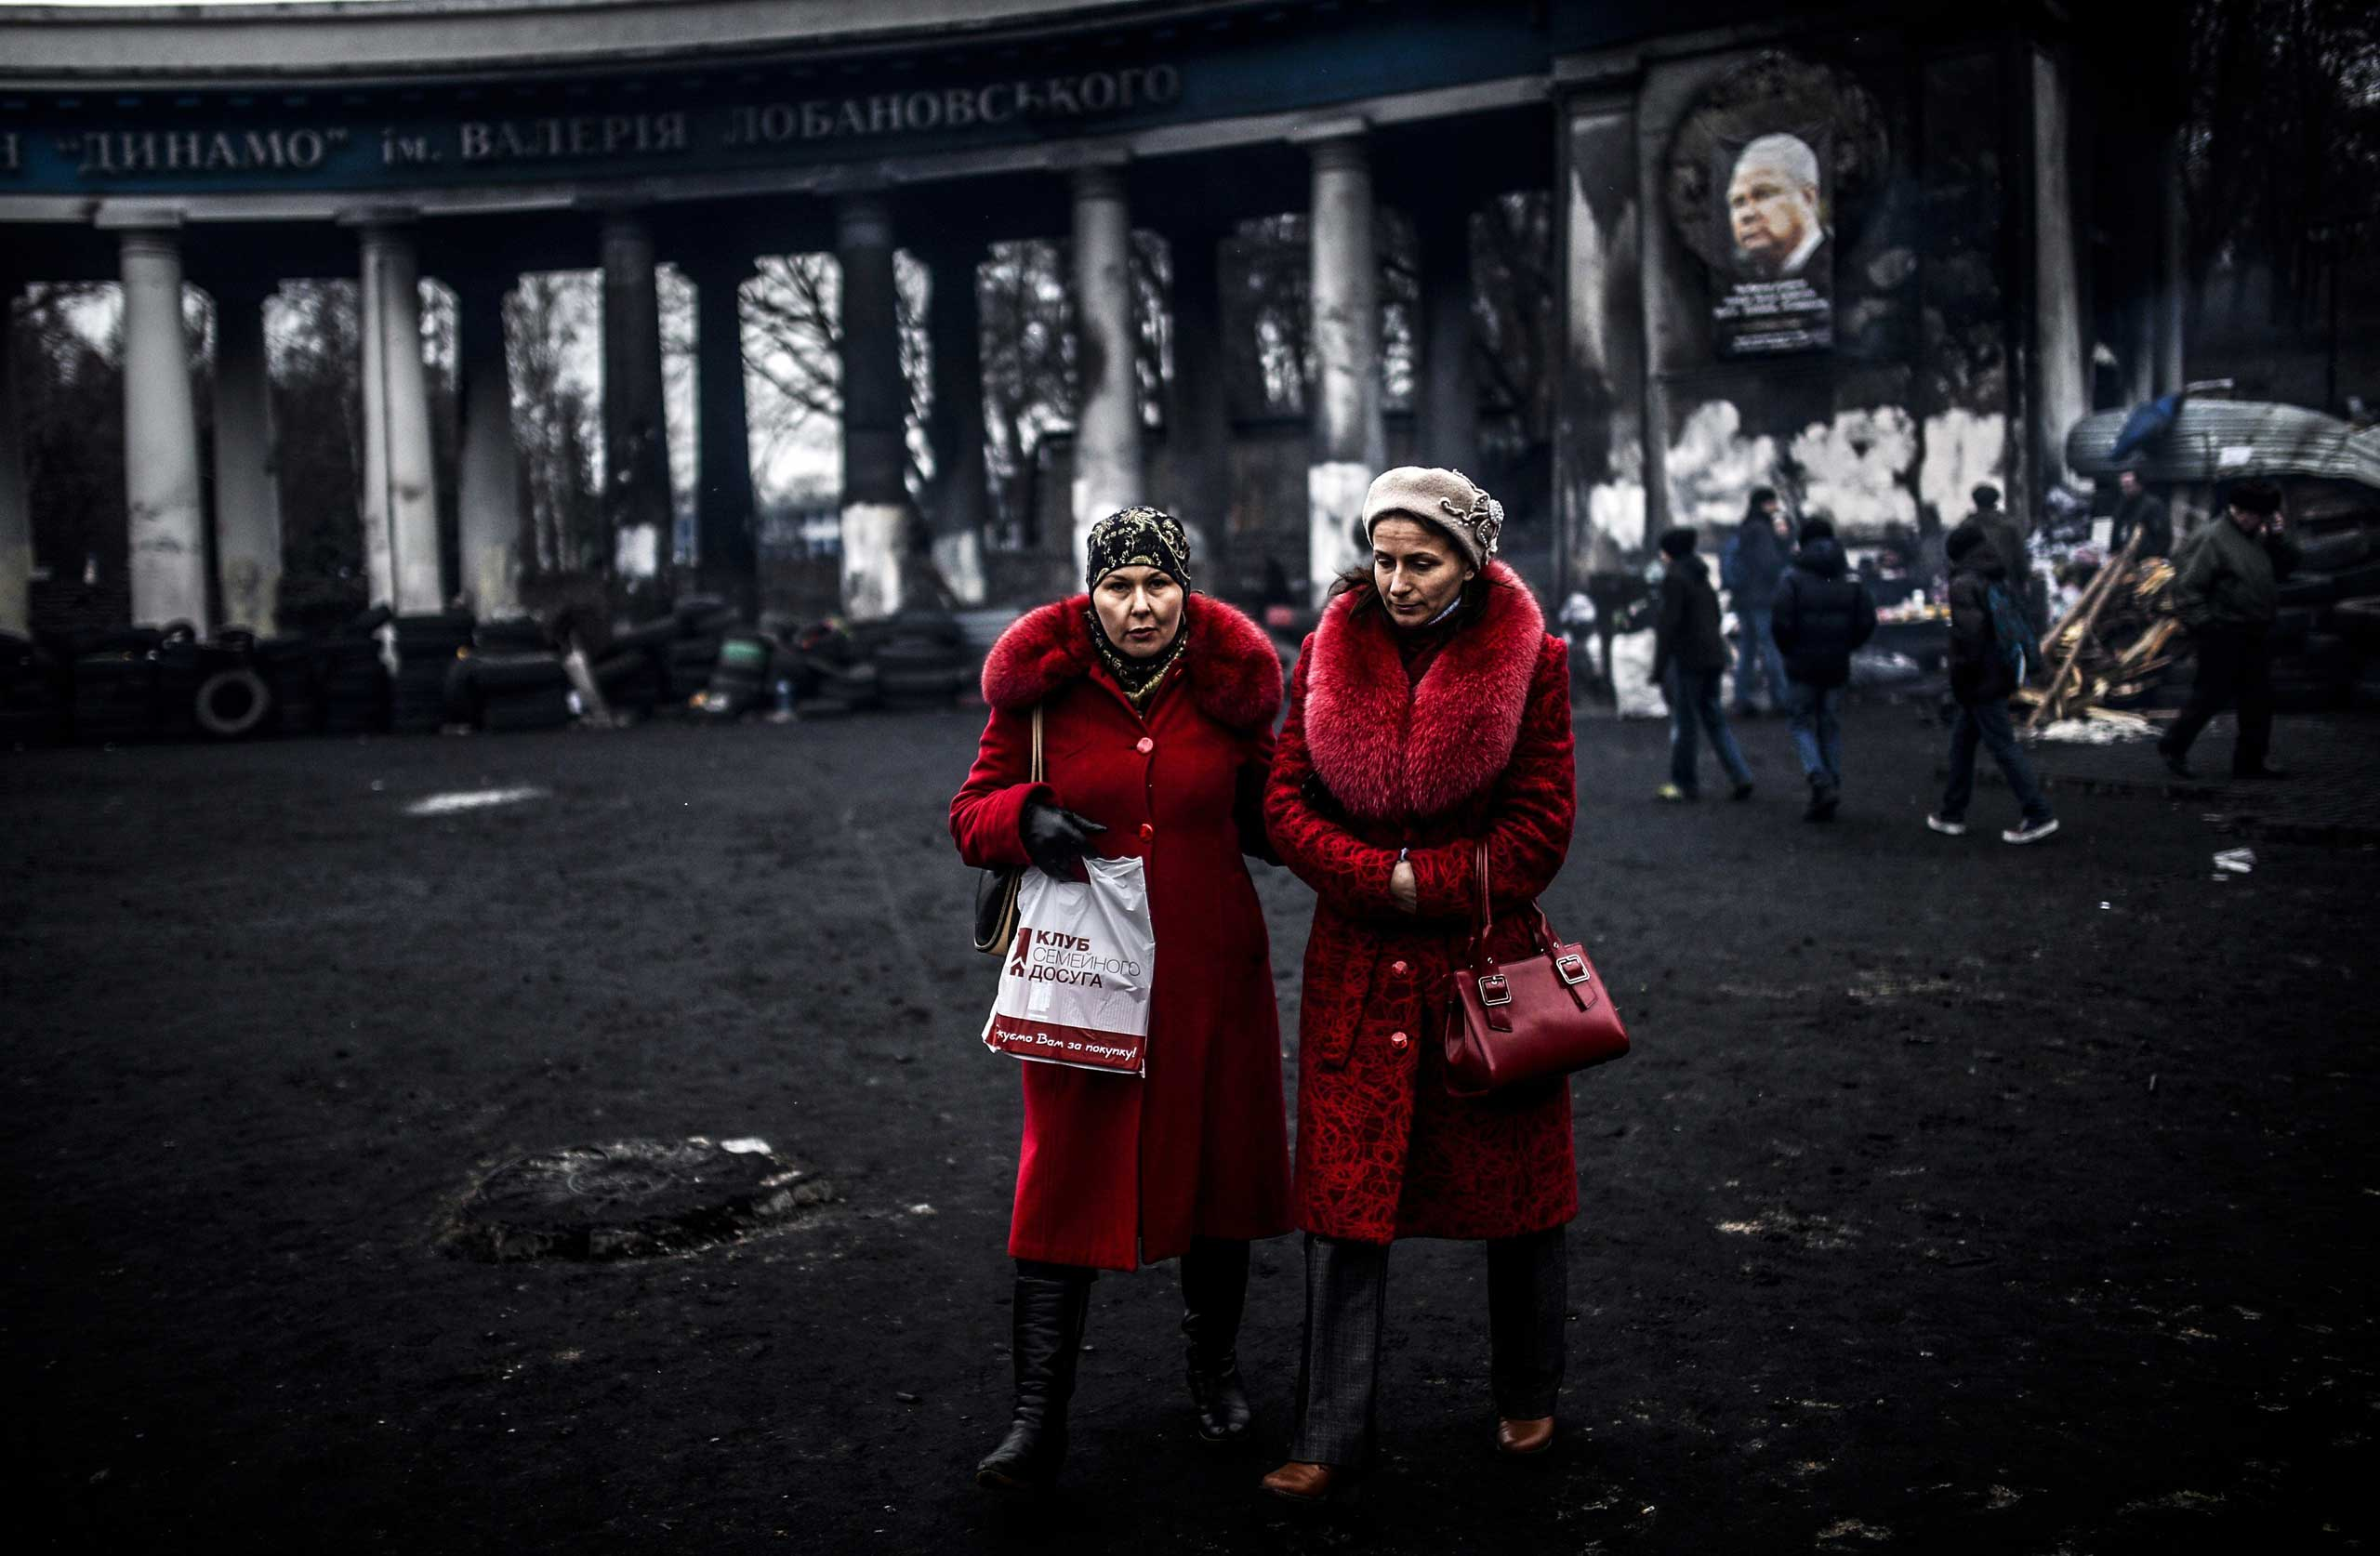 Women walk in front of the Dinamo Kiev's stadium on Feb. 25, 2014, in Kiev.